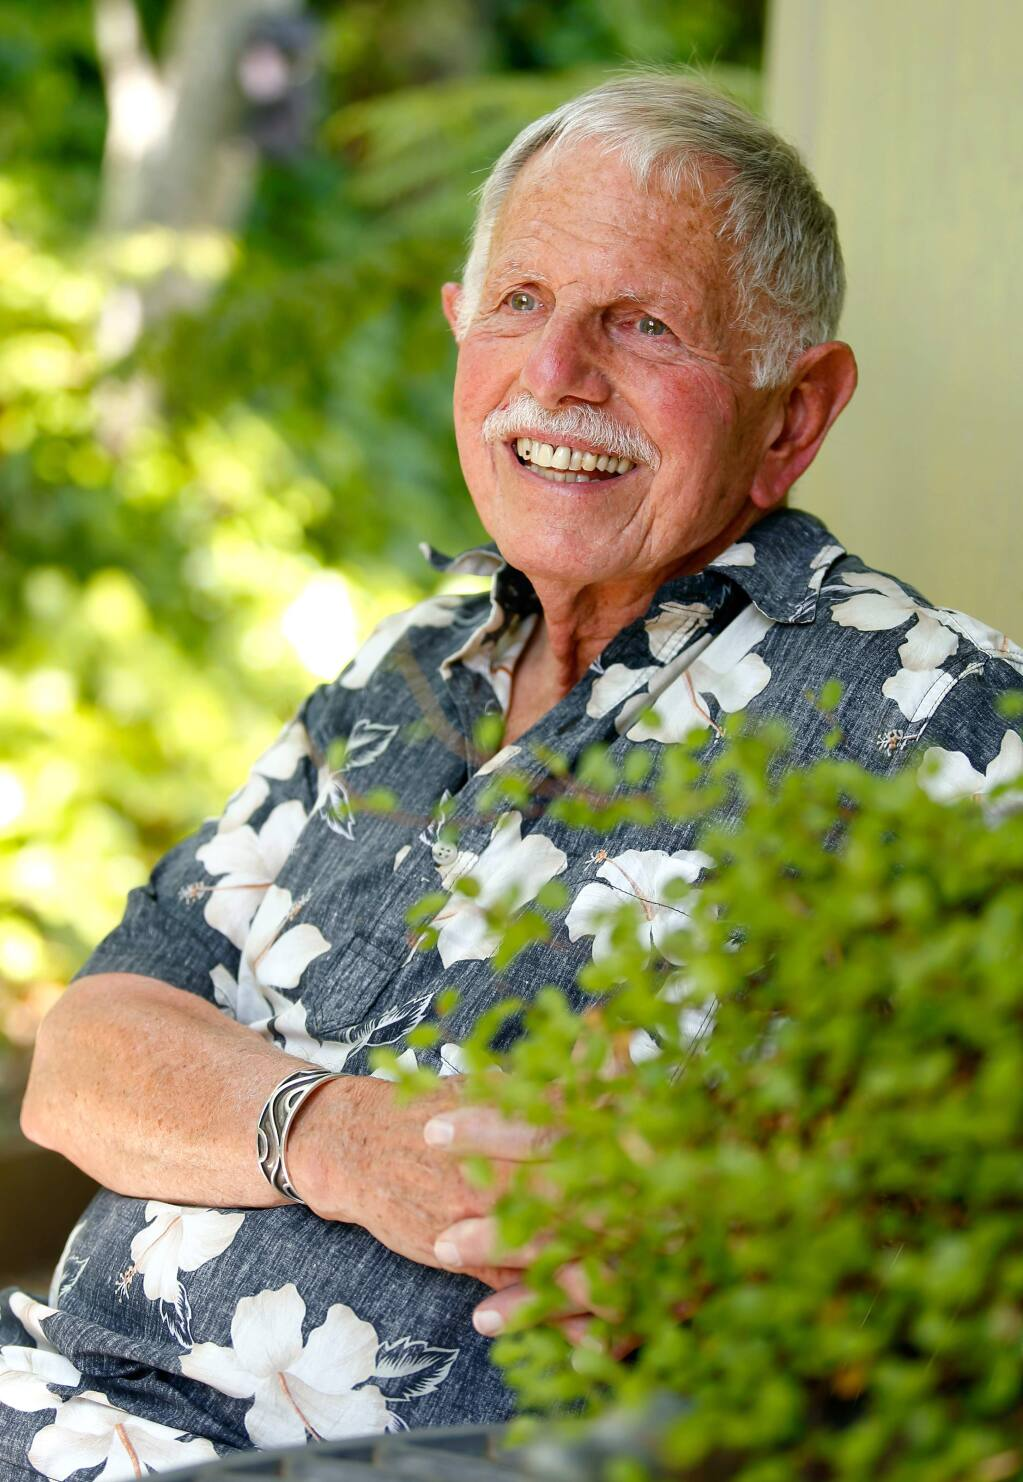 Gary 'Buz' Hermes, 77, has been an advocate for LGBTQ seniors for years, working to raise awareness about the challenges of elderly members in the LGBTQ community, at his home in Sonoma, California on Friday, May 27, 2016. (Alvin Jornada / The Press Democrat)